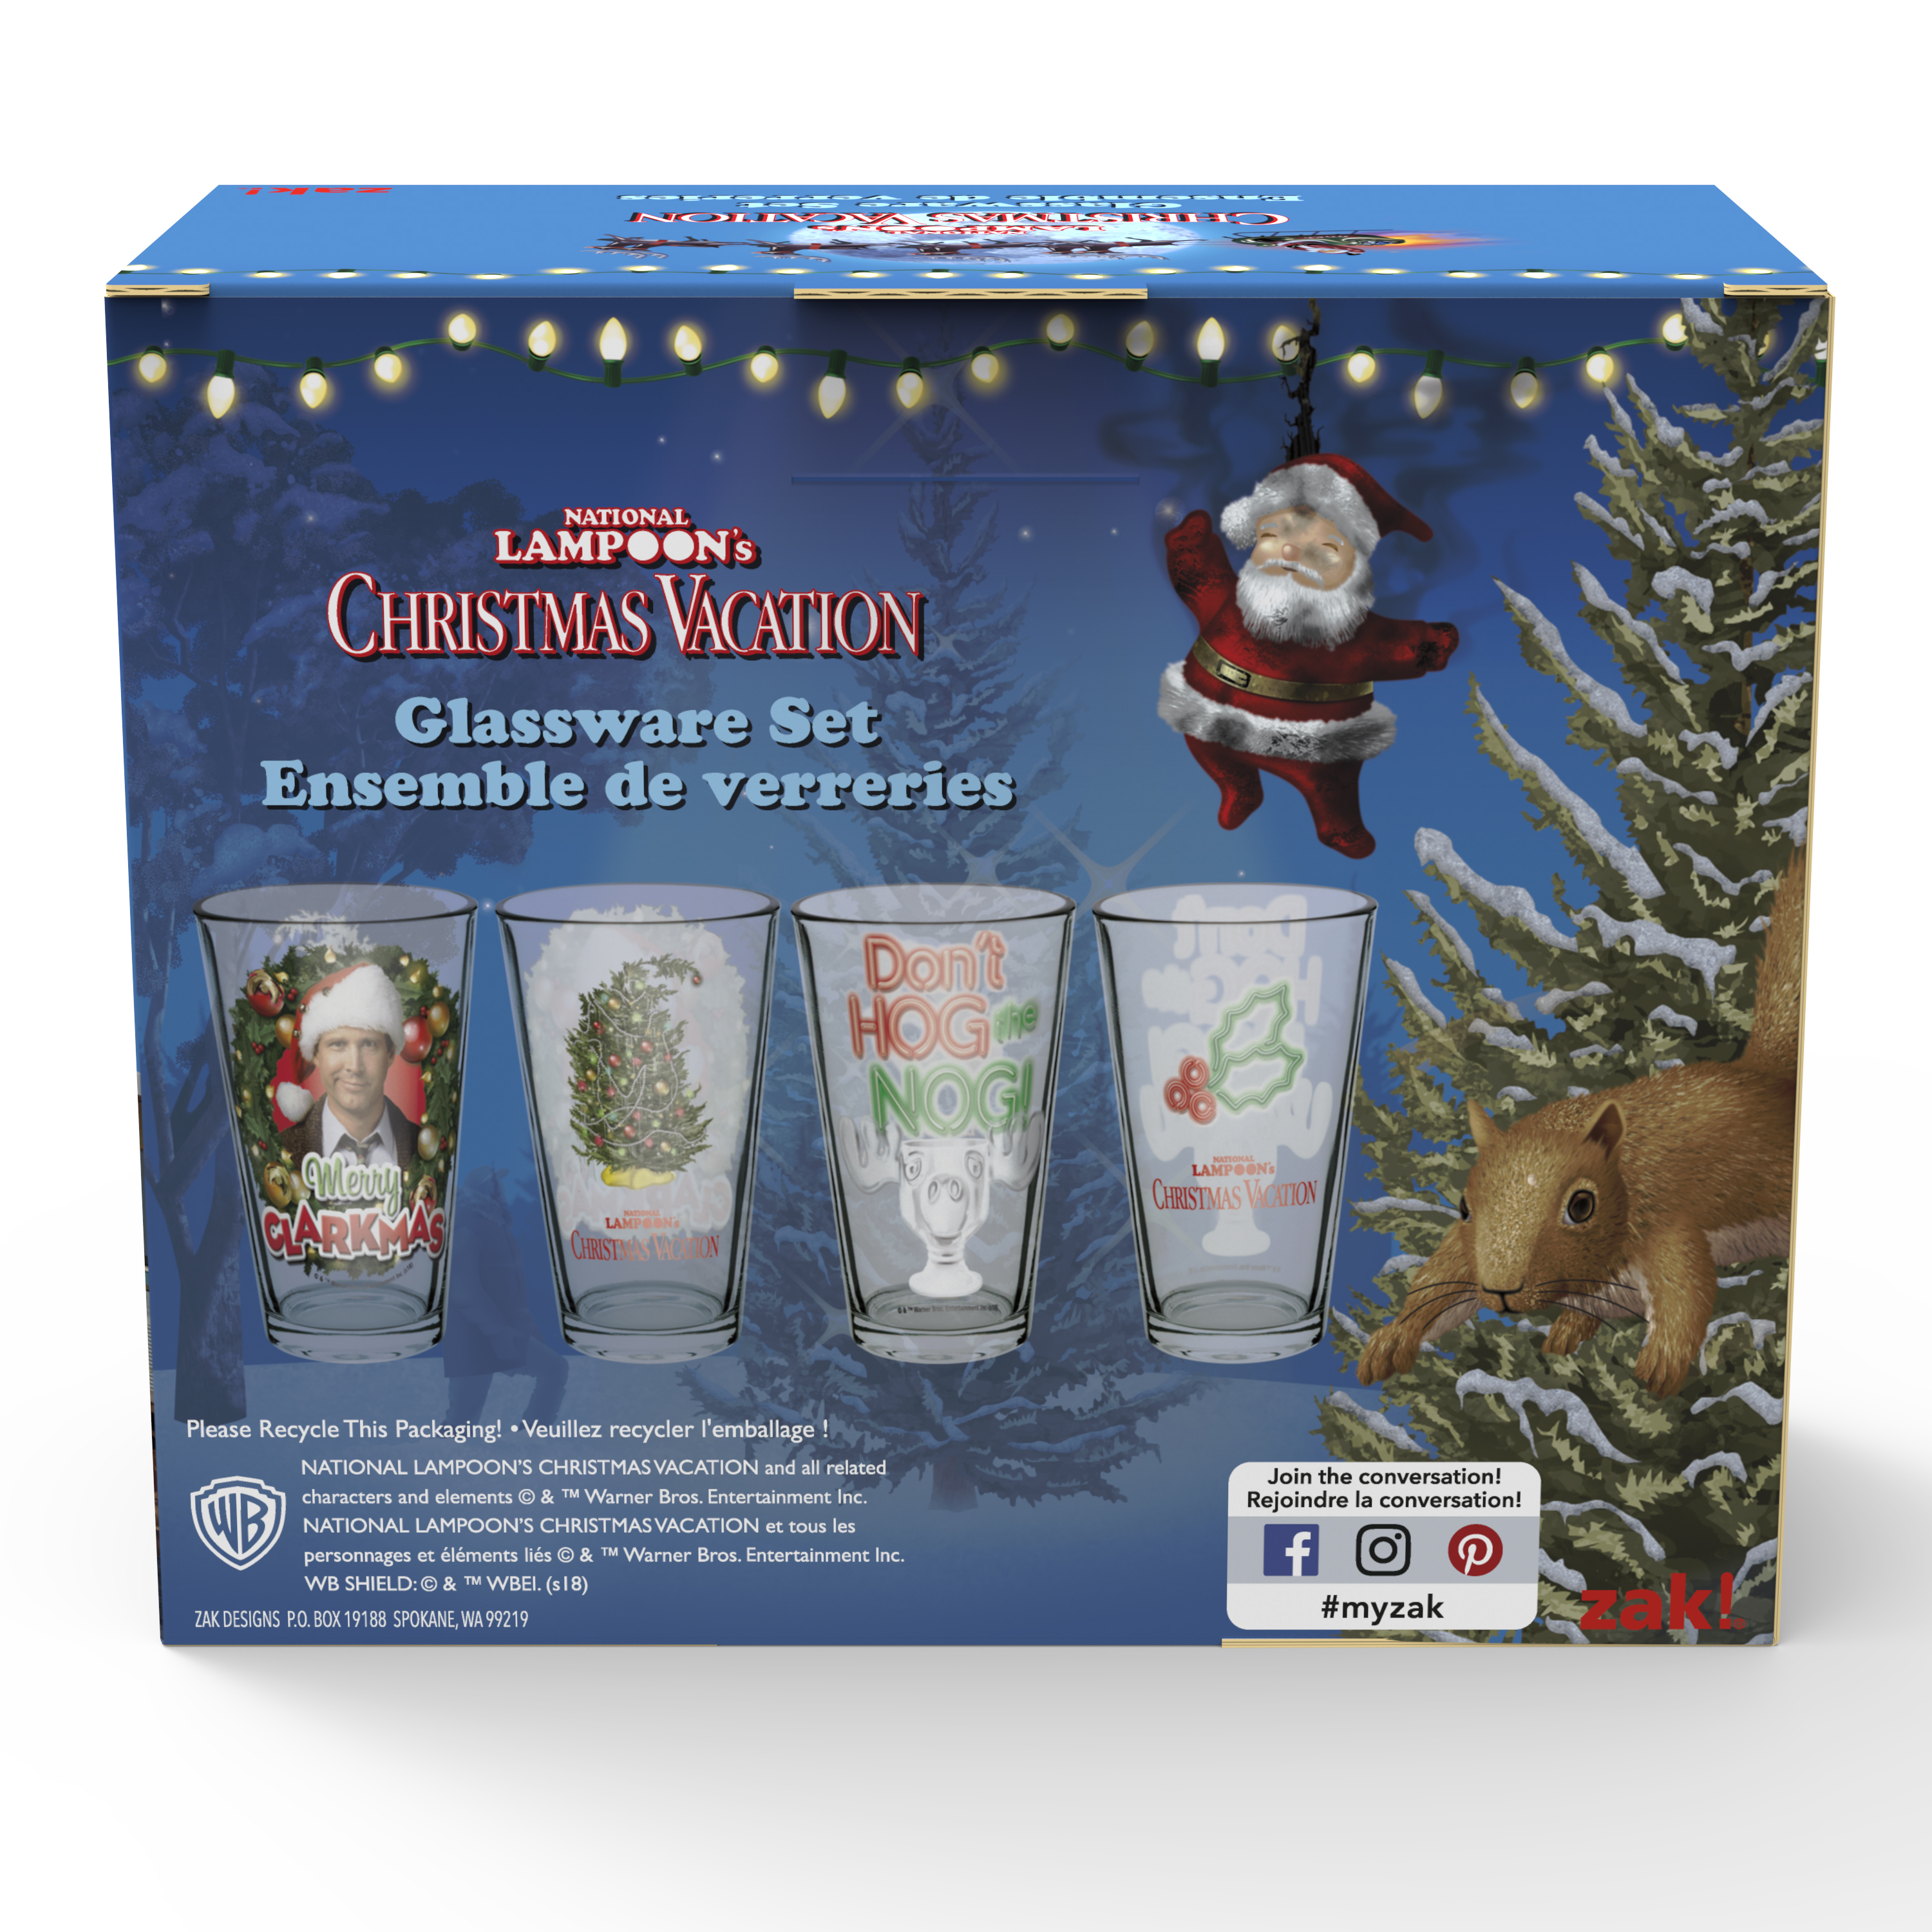 National Lampoon's Christmas Vacation 16 ounce Pint Glasses, Clark Griswold, 2-piece set slideshow image 4